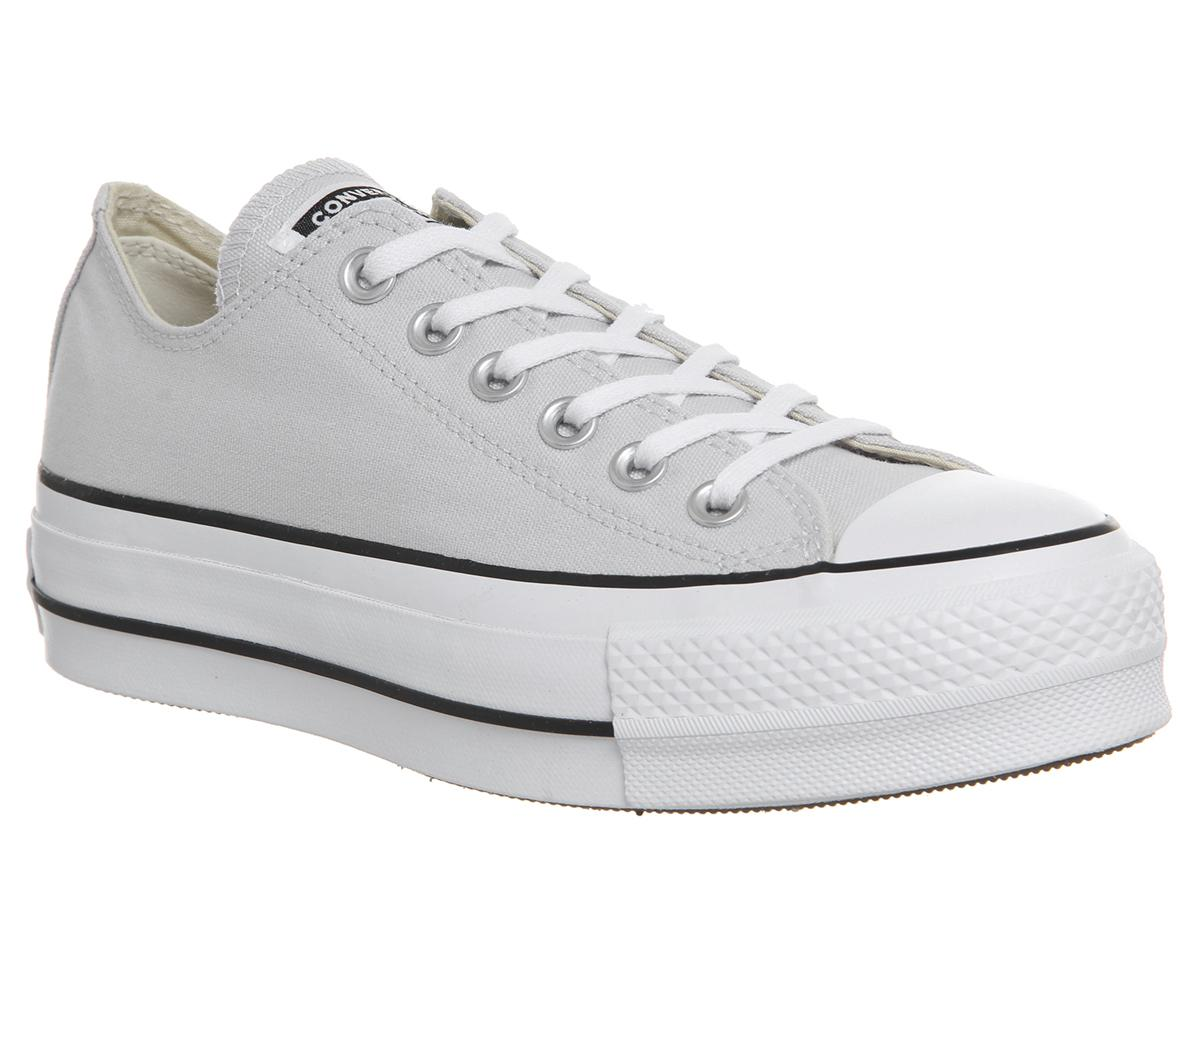 Converse All Star Lift Low Mouse White